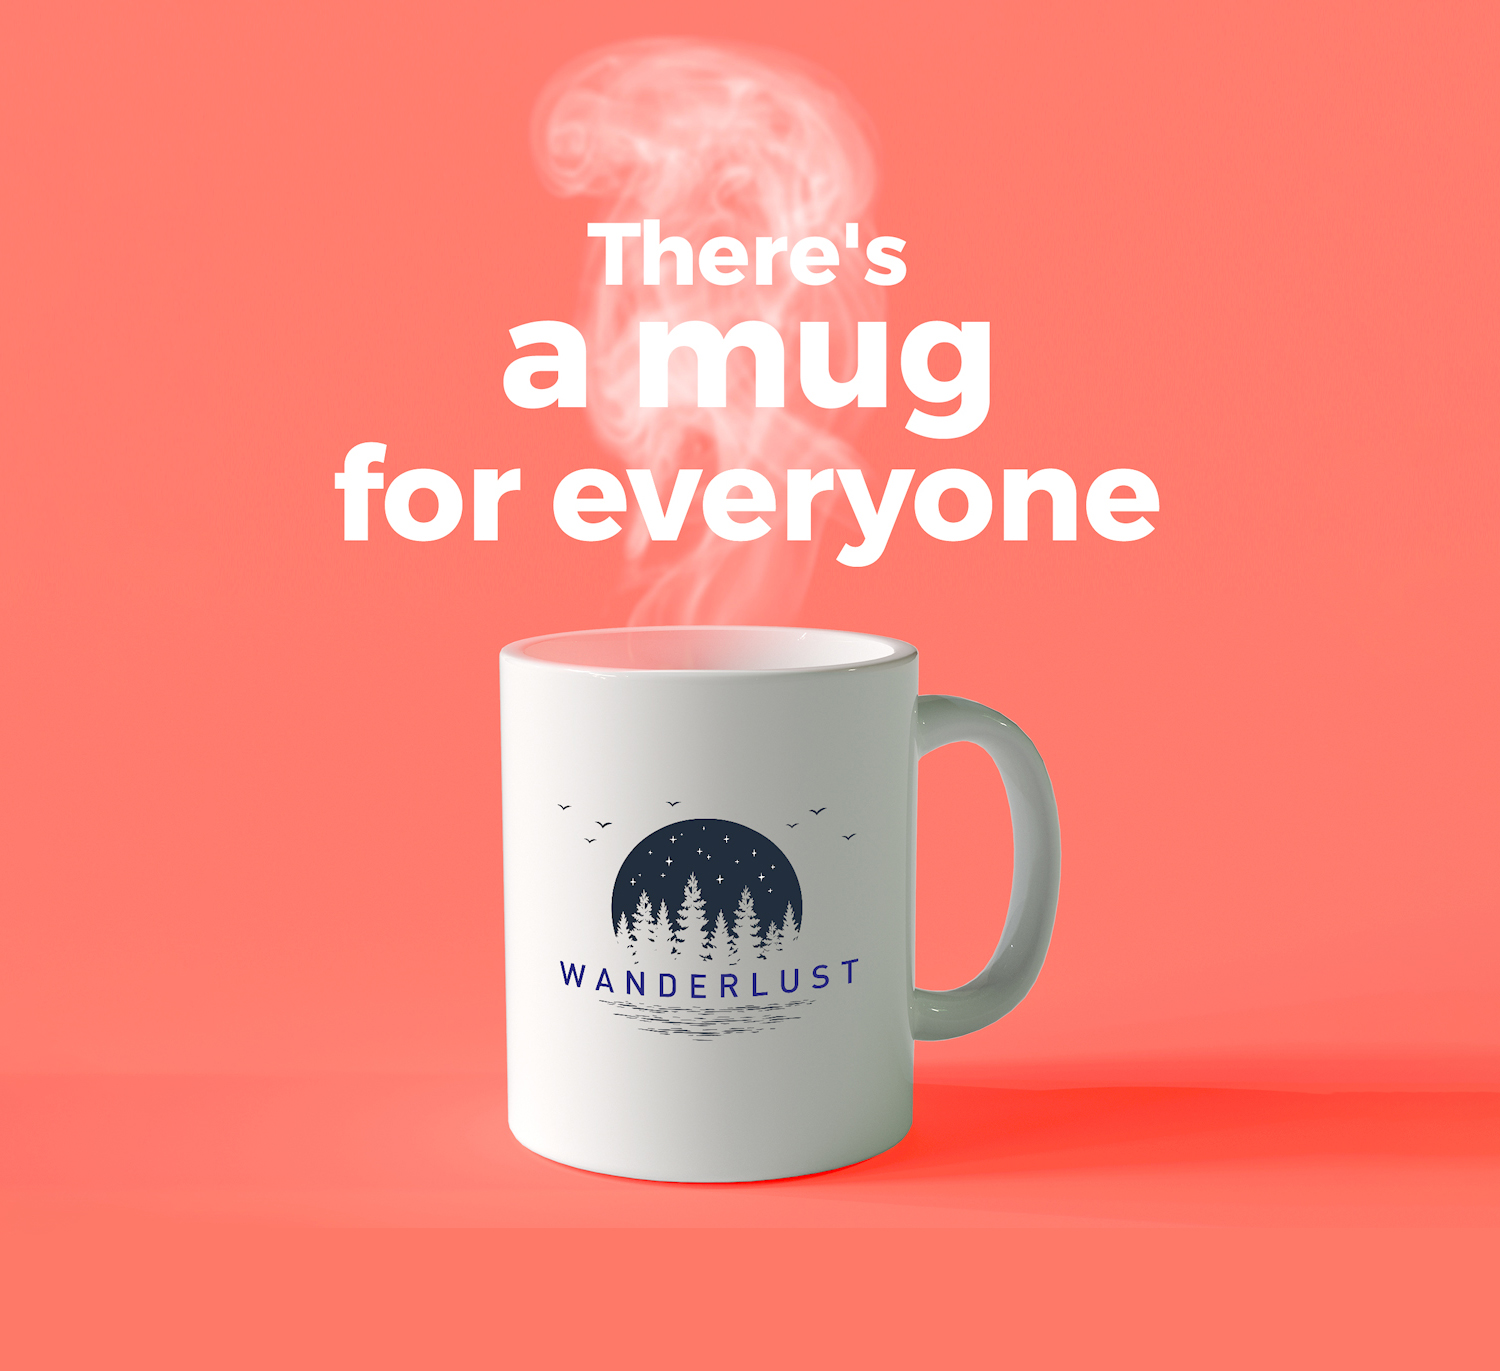 Custom printed mugs branded with your message